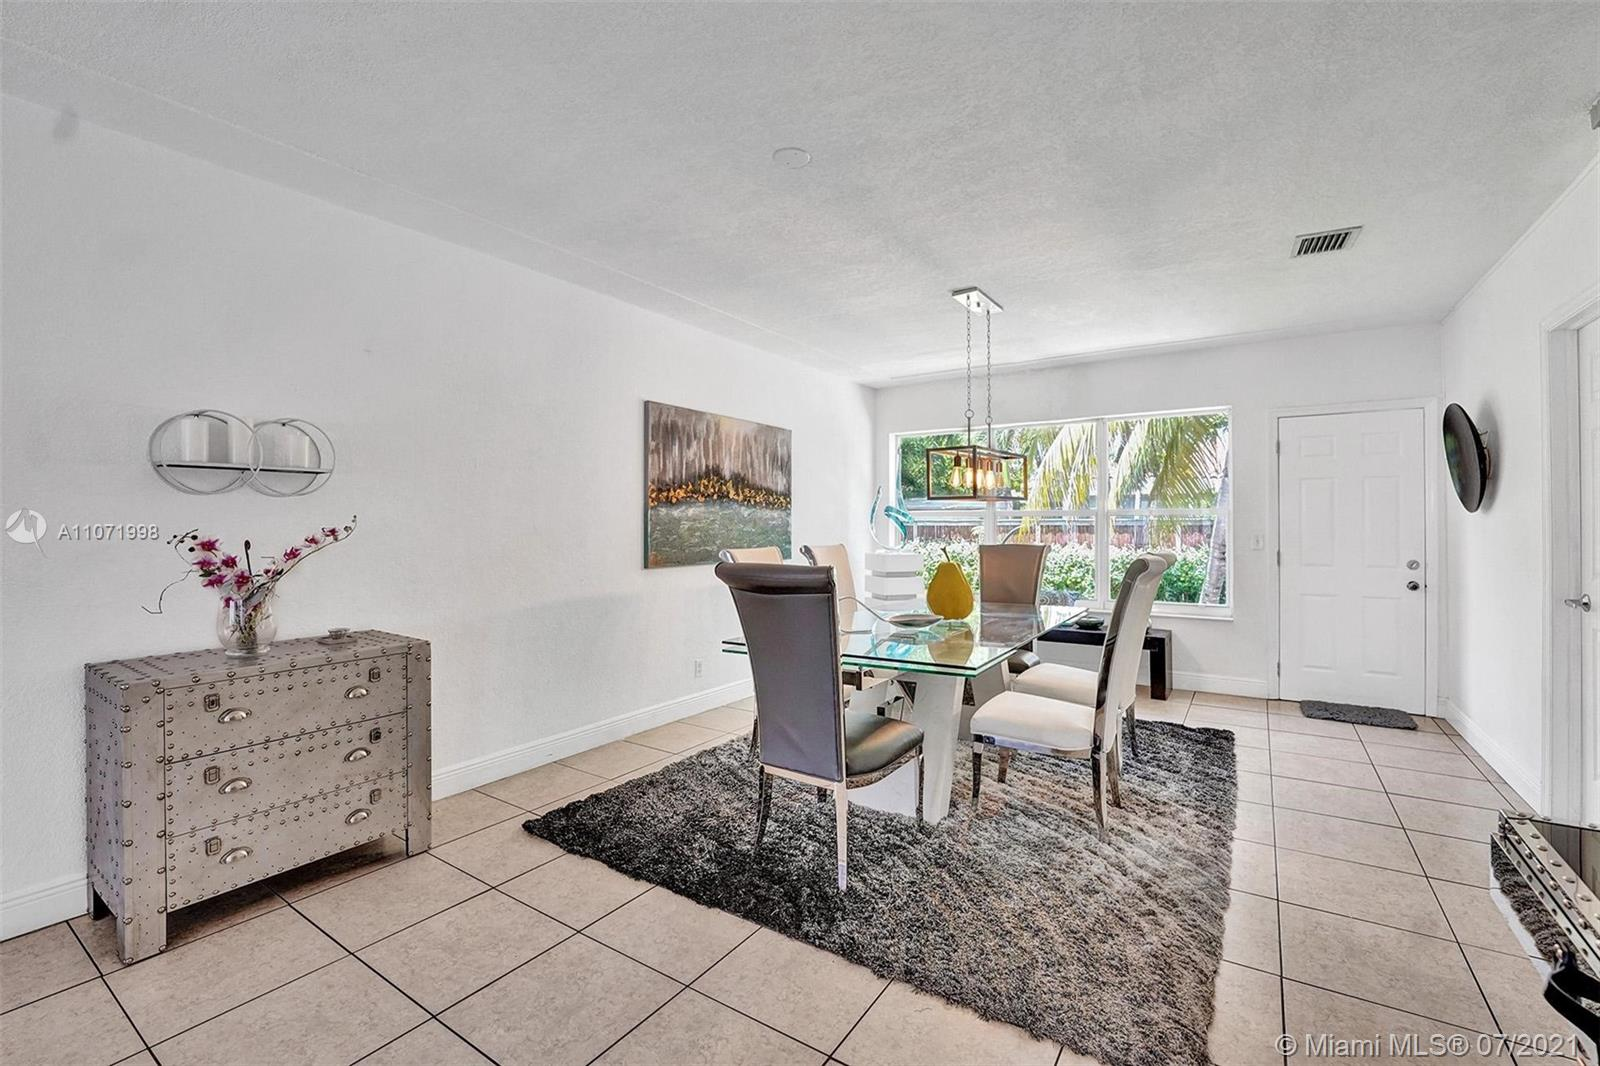 9272  Harding Ave  For Sale A11071998, FL